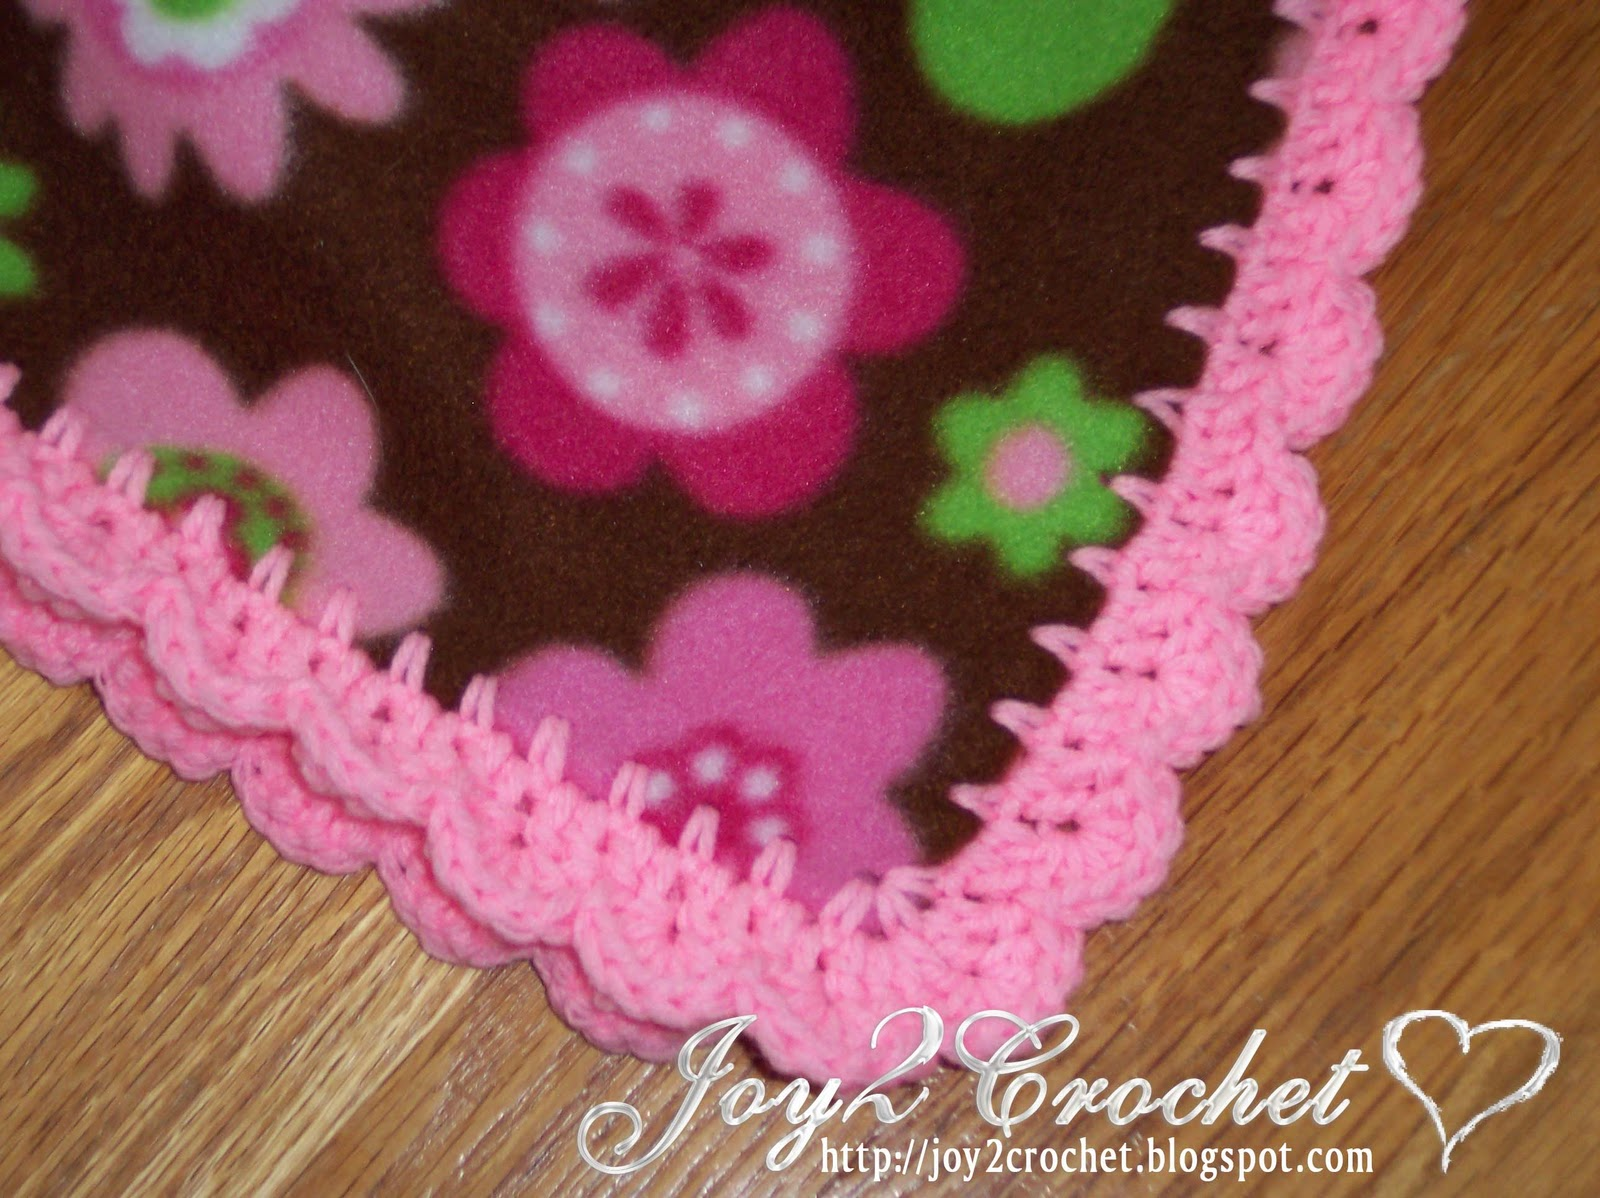 Crochet Patterns For Blanket Edges : Joy 2 Crochet: Fleece Baby Blankets with Crocheted Edge